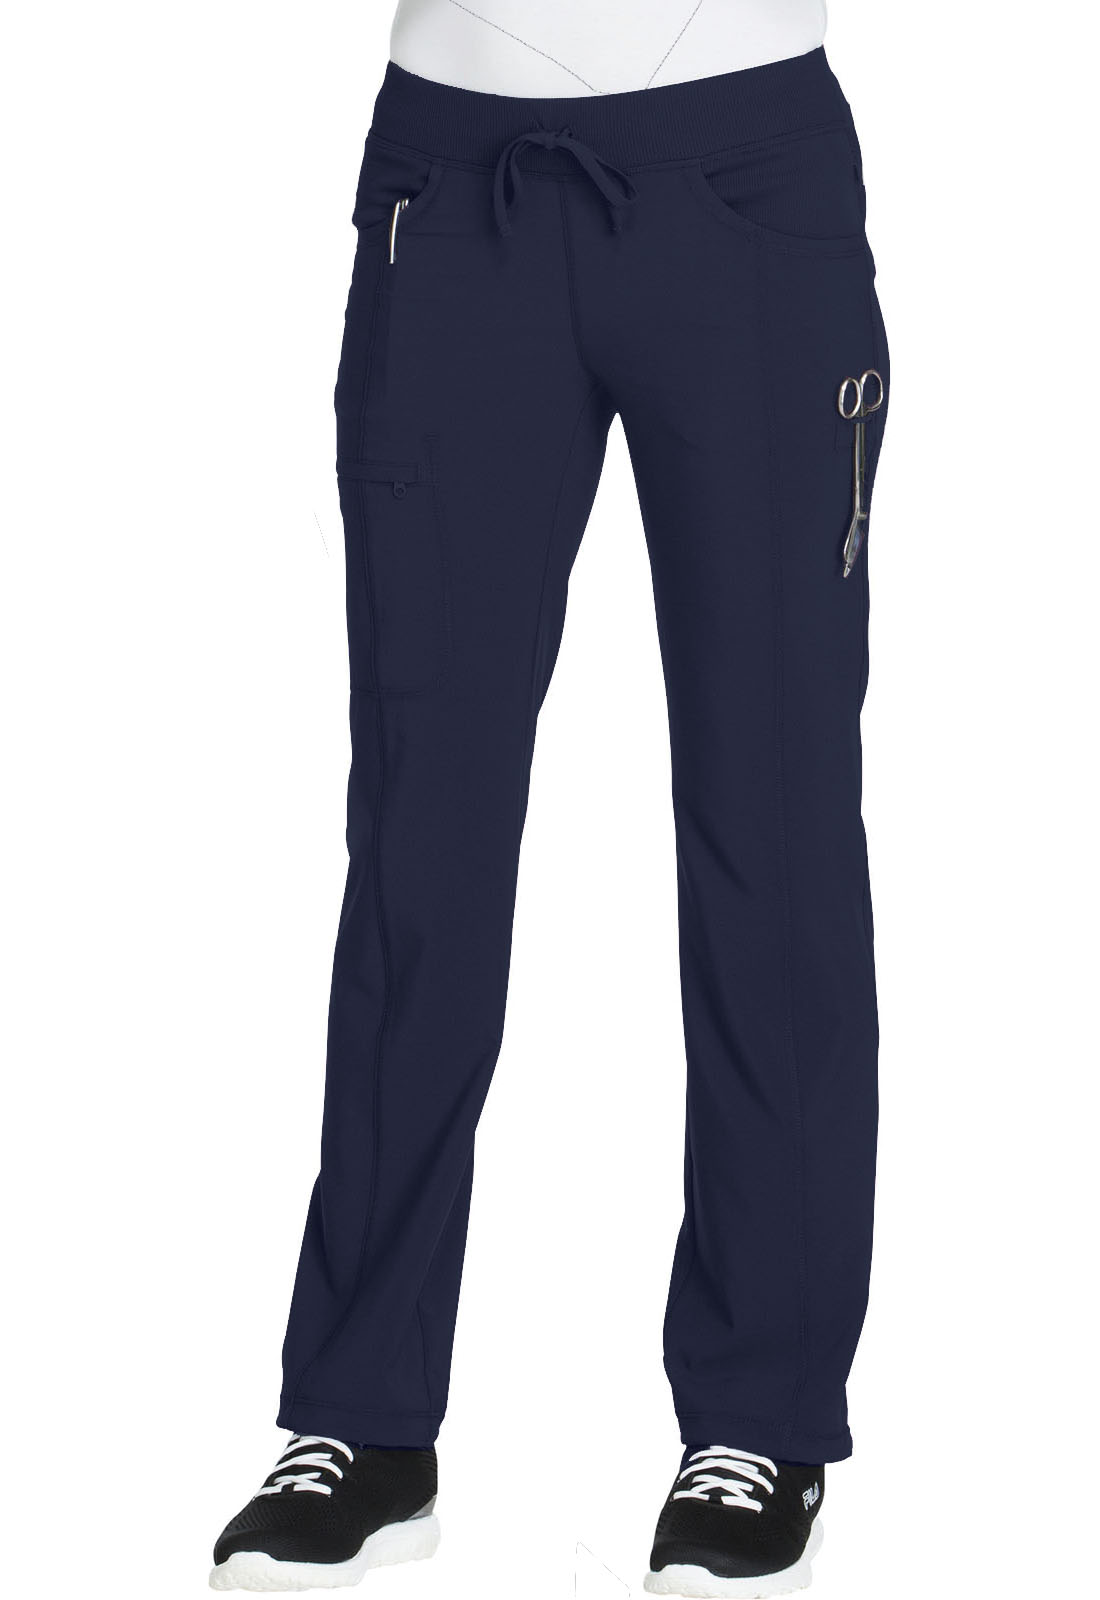 1af6115fb05 Infinity Low Rise Straight Leg Drawstring Pant in Navy 1123A-NYPS ...